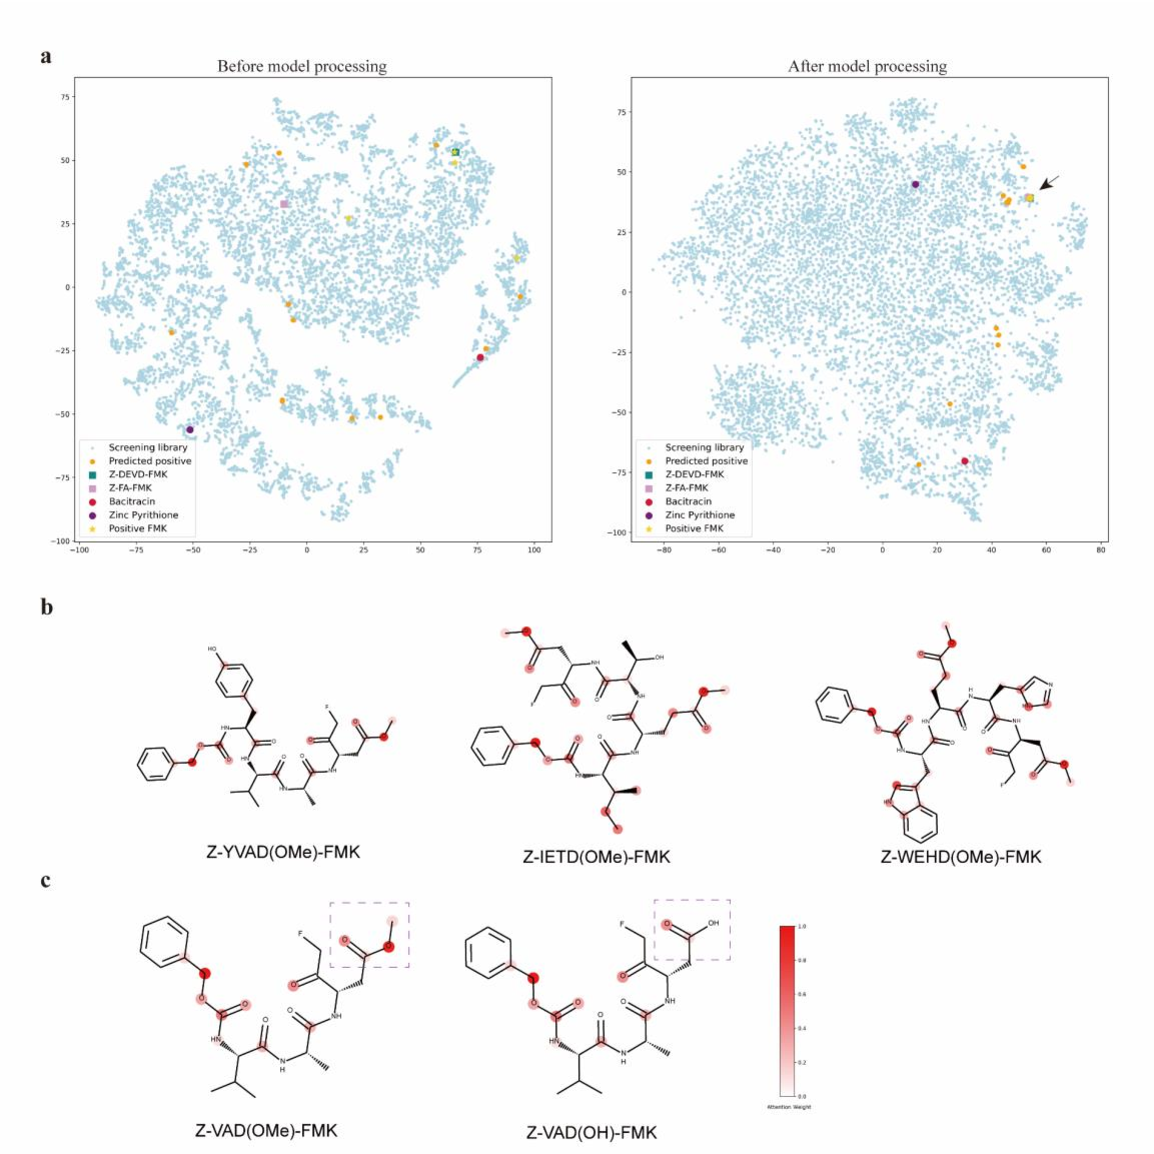 Figure 4 for A Novel Framework Integrating AI Model and Enzymological Experiments Promotes Identification of SARS-CoV-2 3CL Protease Inhibitors and Activity-based Probe